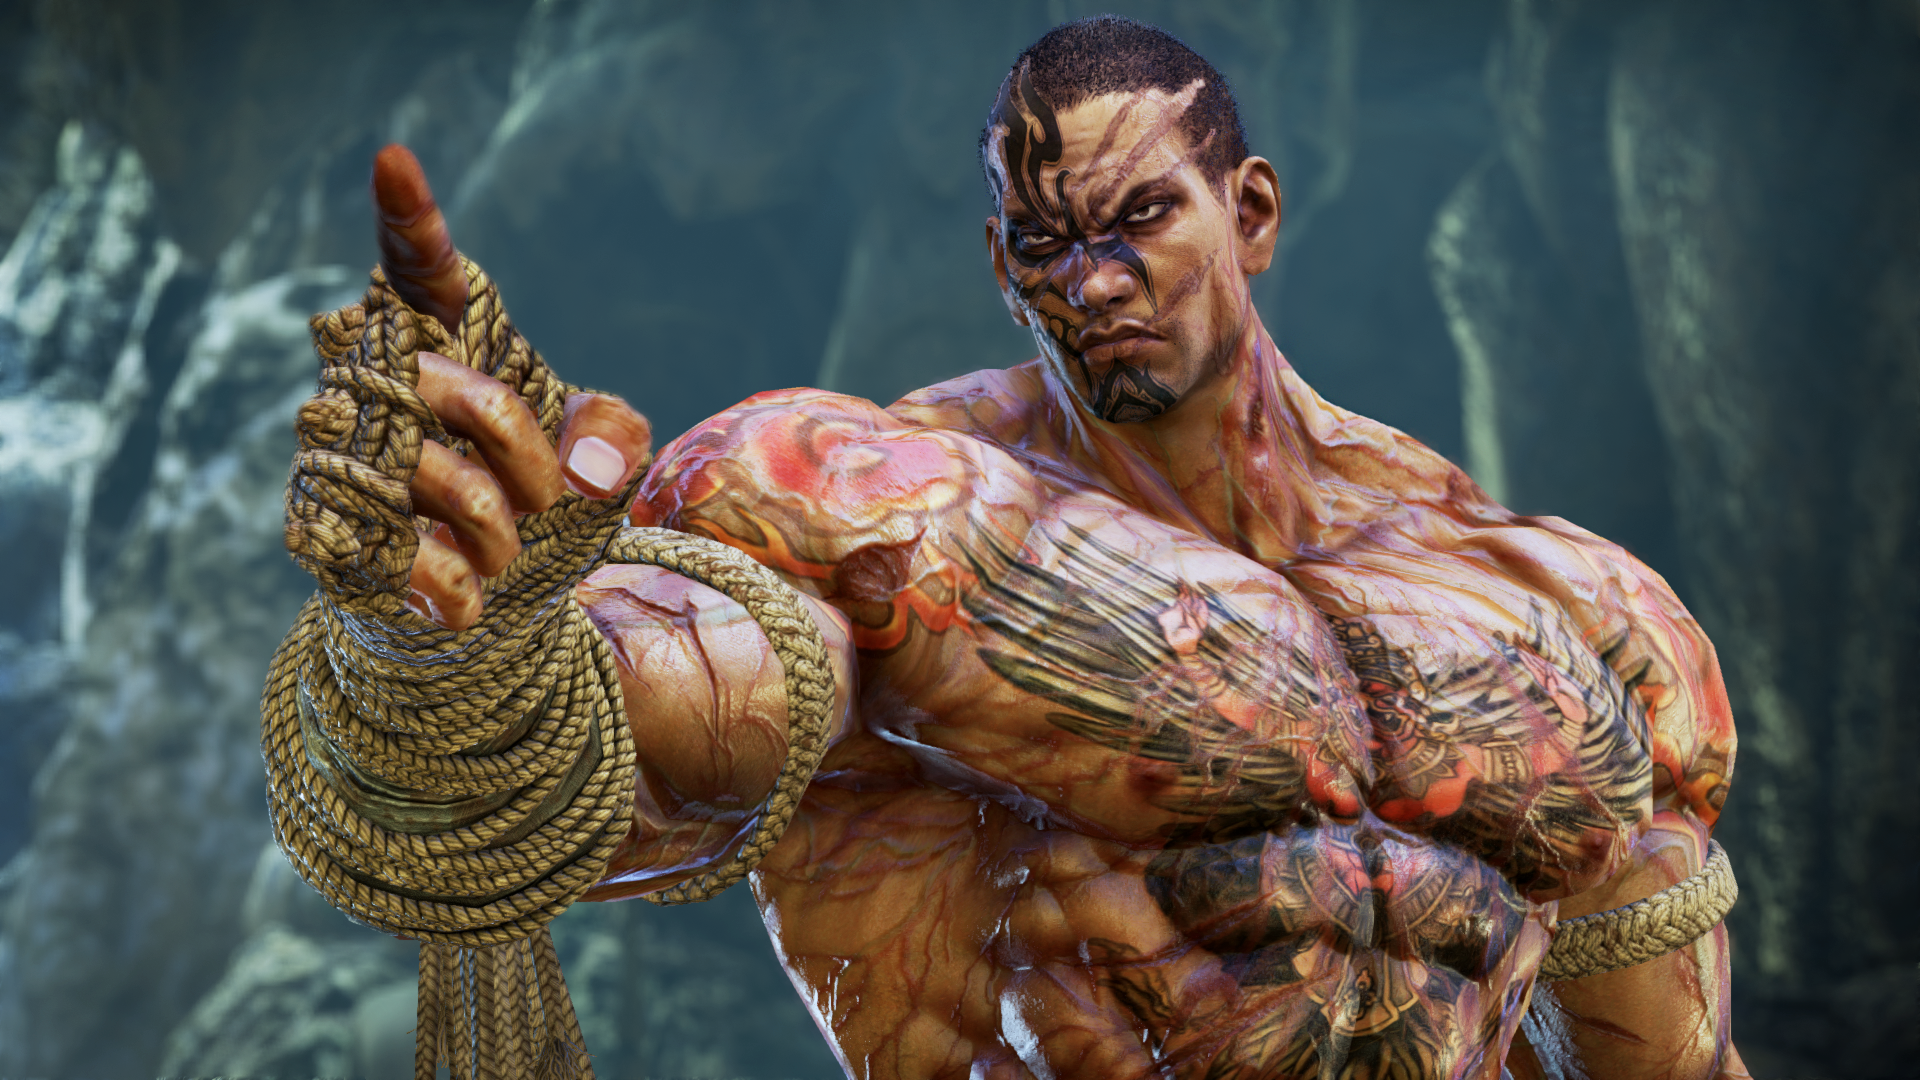 Fahkumram arrives in TEKKEN 7